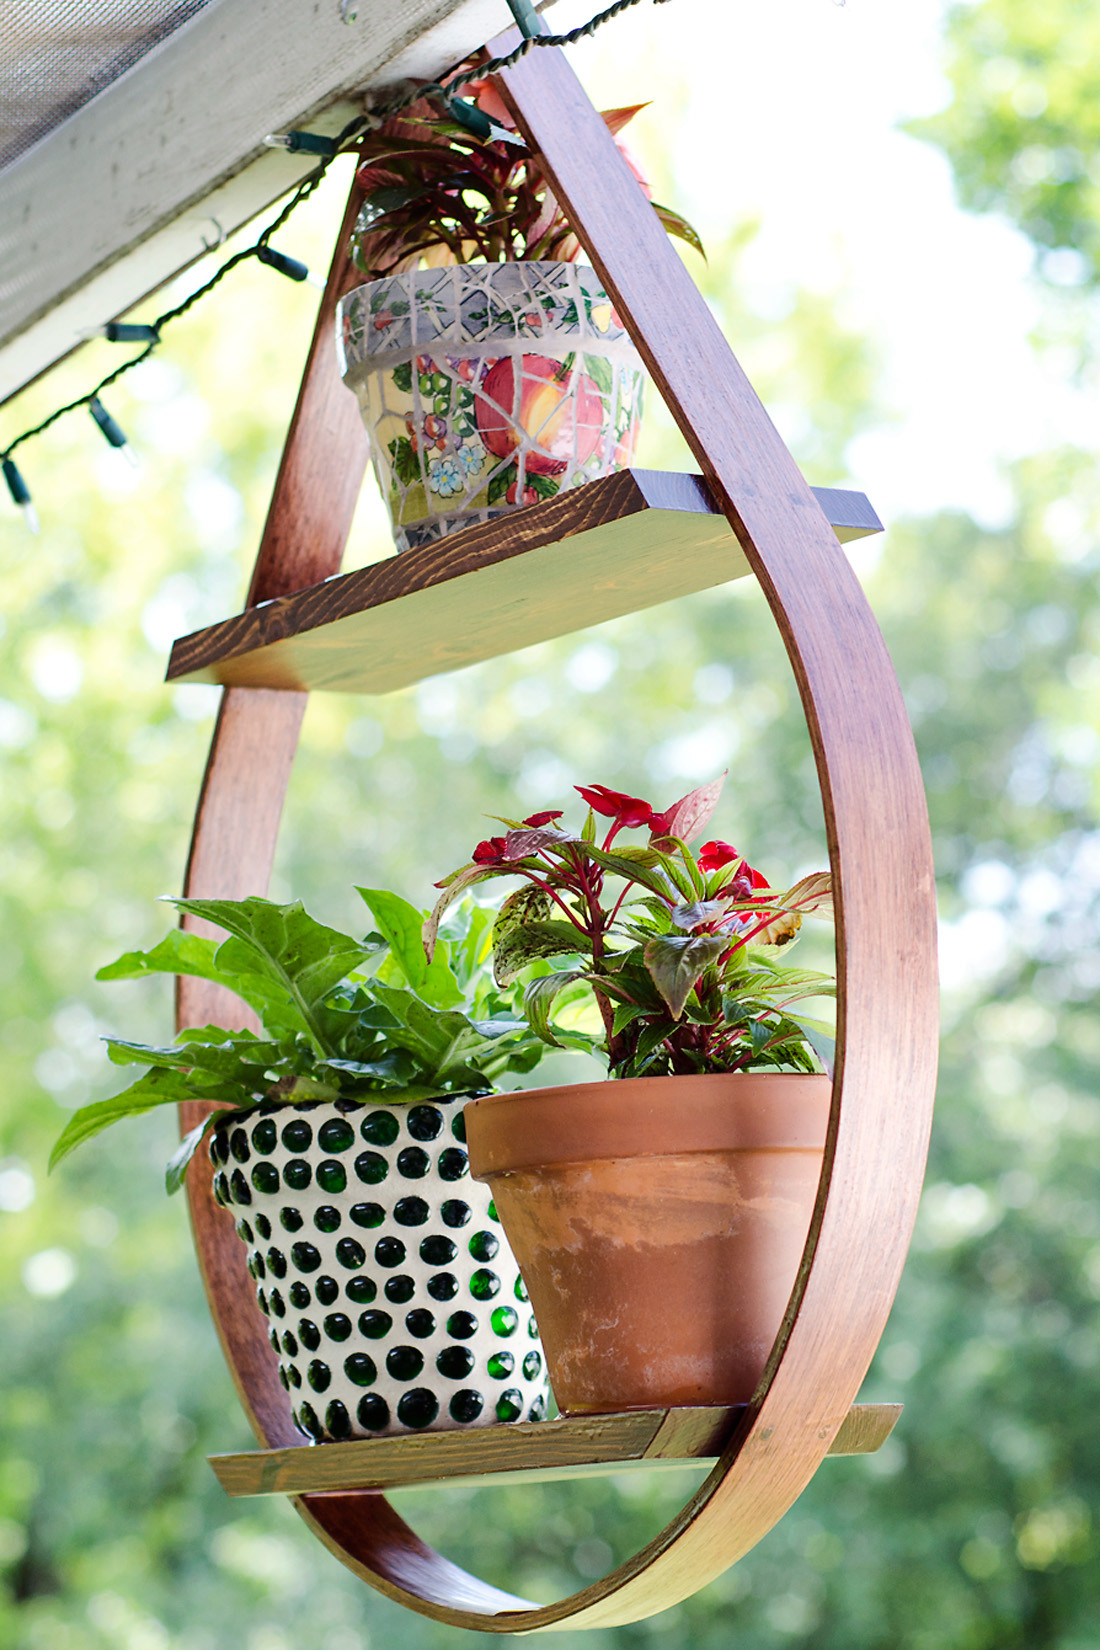 Hanging Plant Holders Awesome Hanging Plant Holder Of Wonderful 48 Ideas Hanging Plant Holders